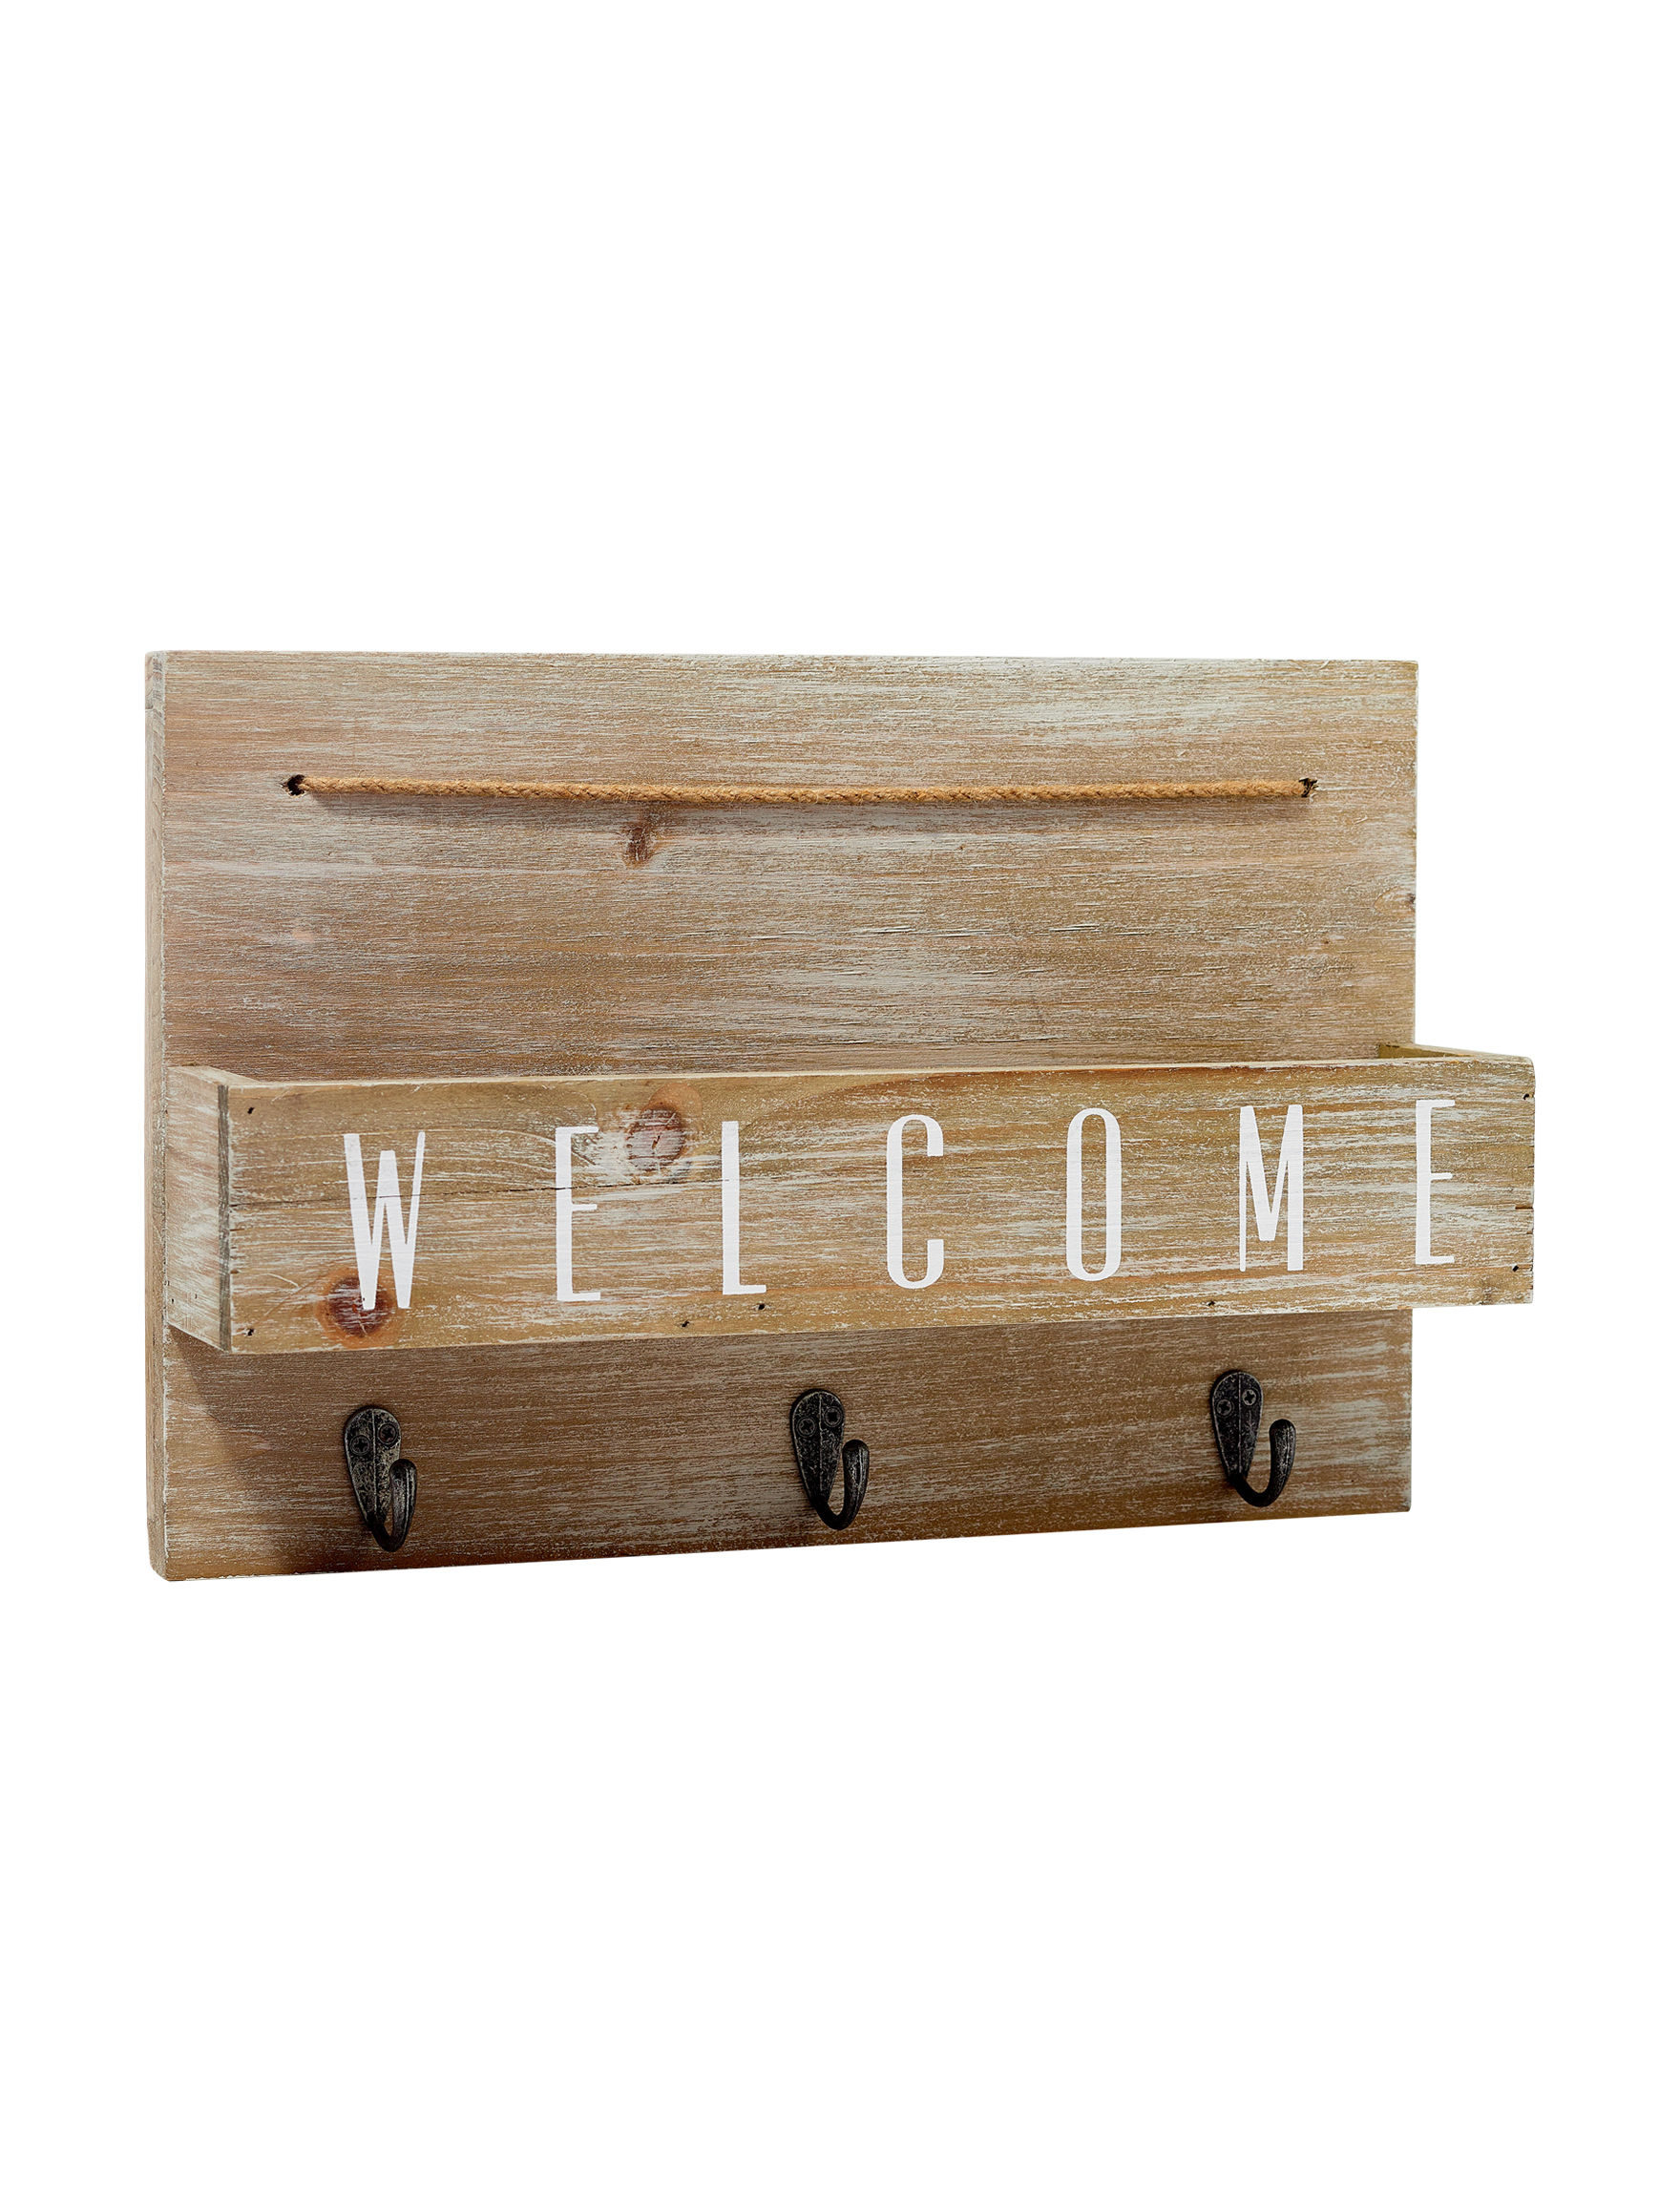 New View Brown Accent Shelves & Wall Hooks Wall Decor